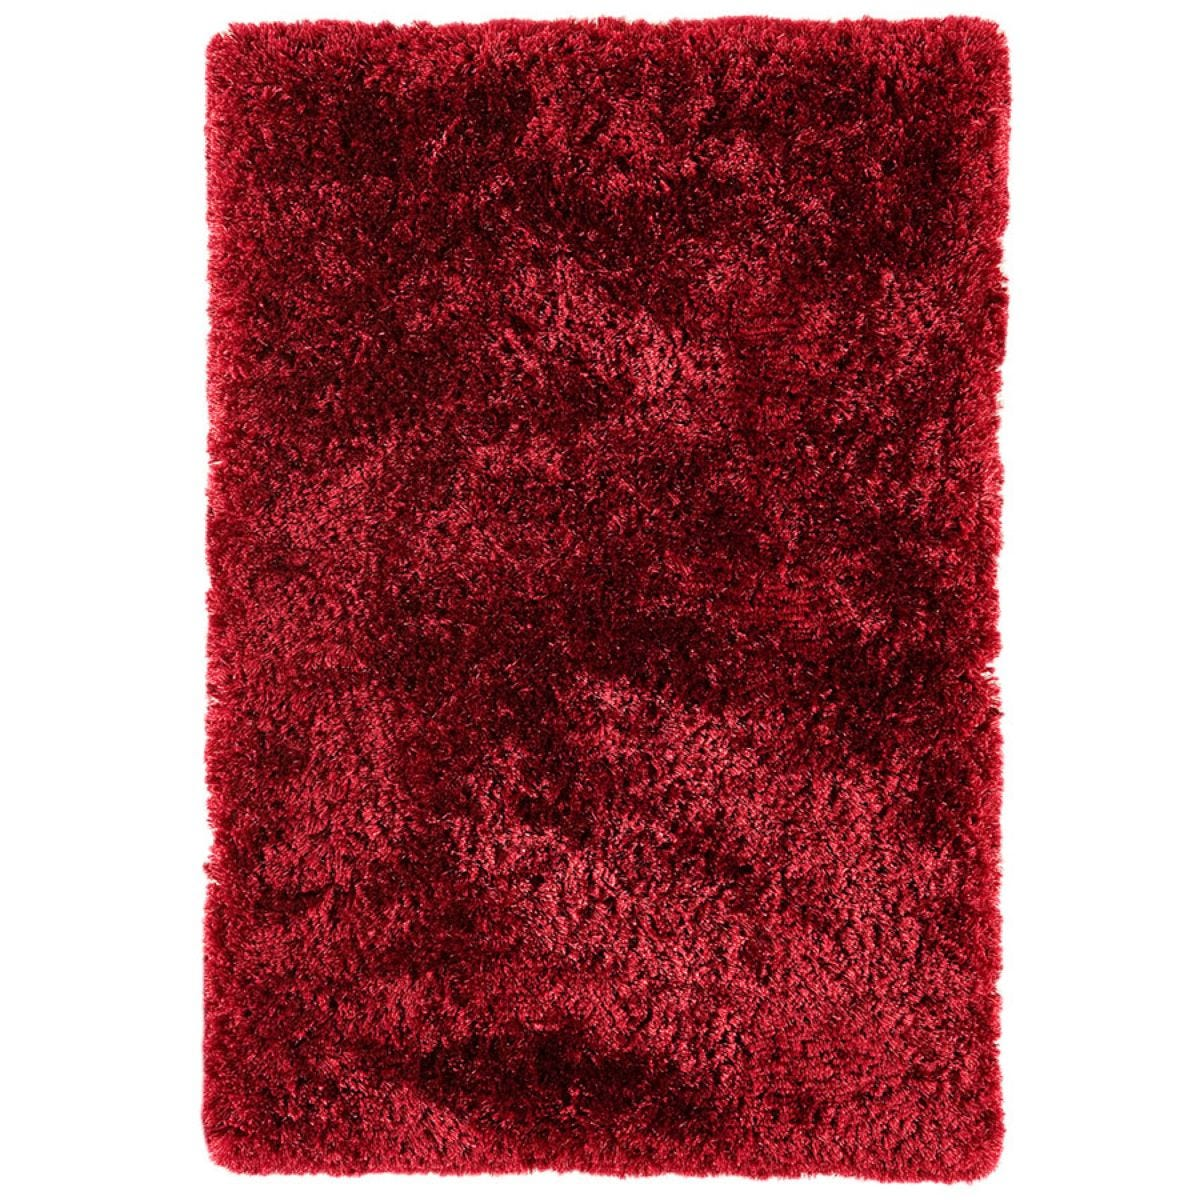 Asiatic Plush Shaggy Rug, 120 x 170cm - Red